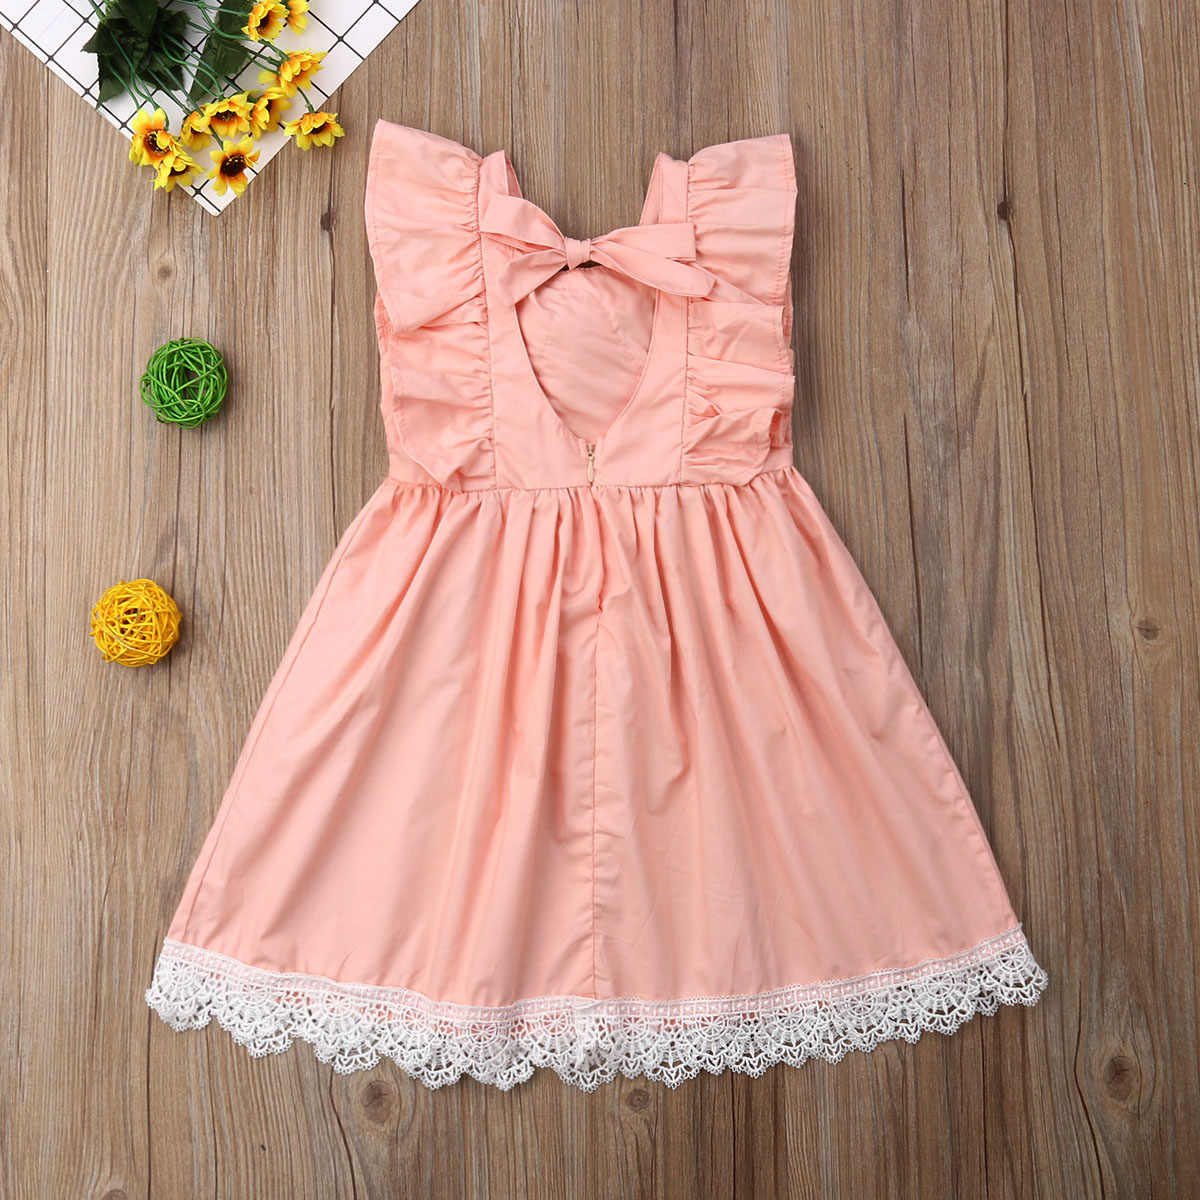 f9153e75d7 Easter Dress For Toddlers Girl - Gomes Weine AG